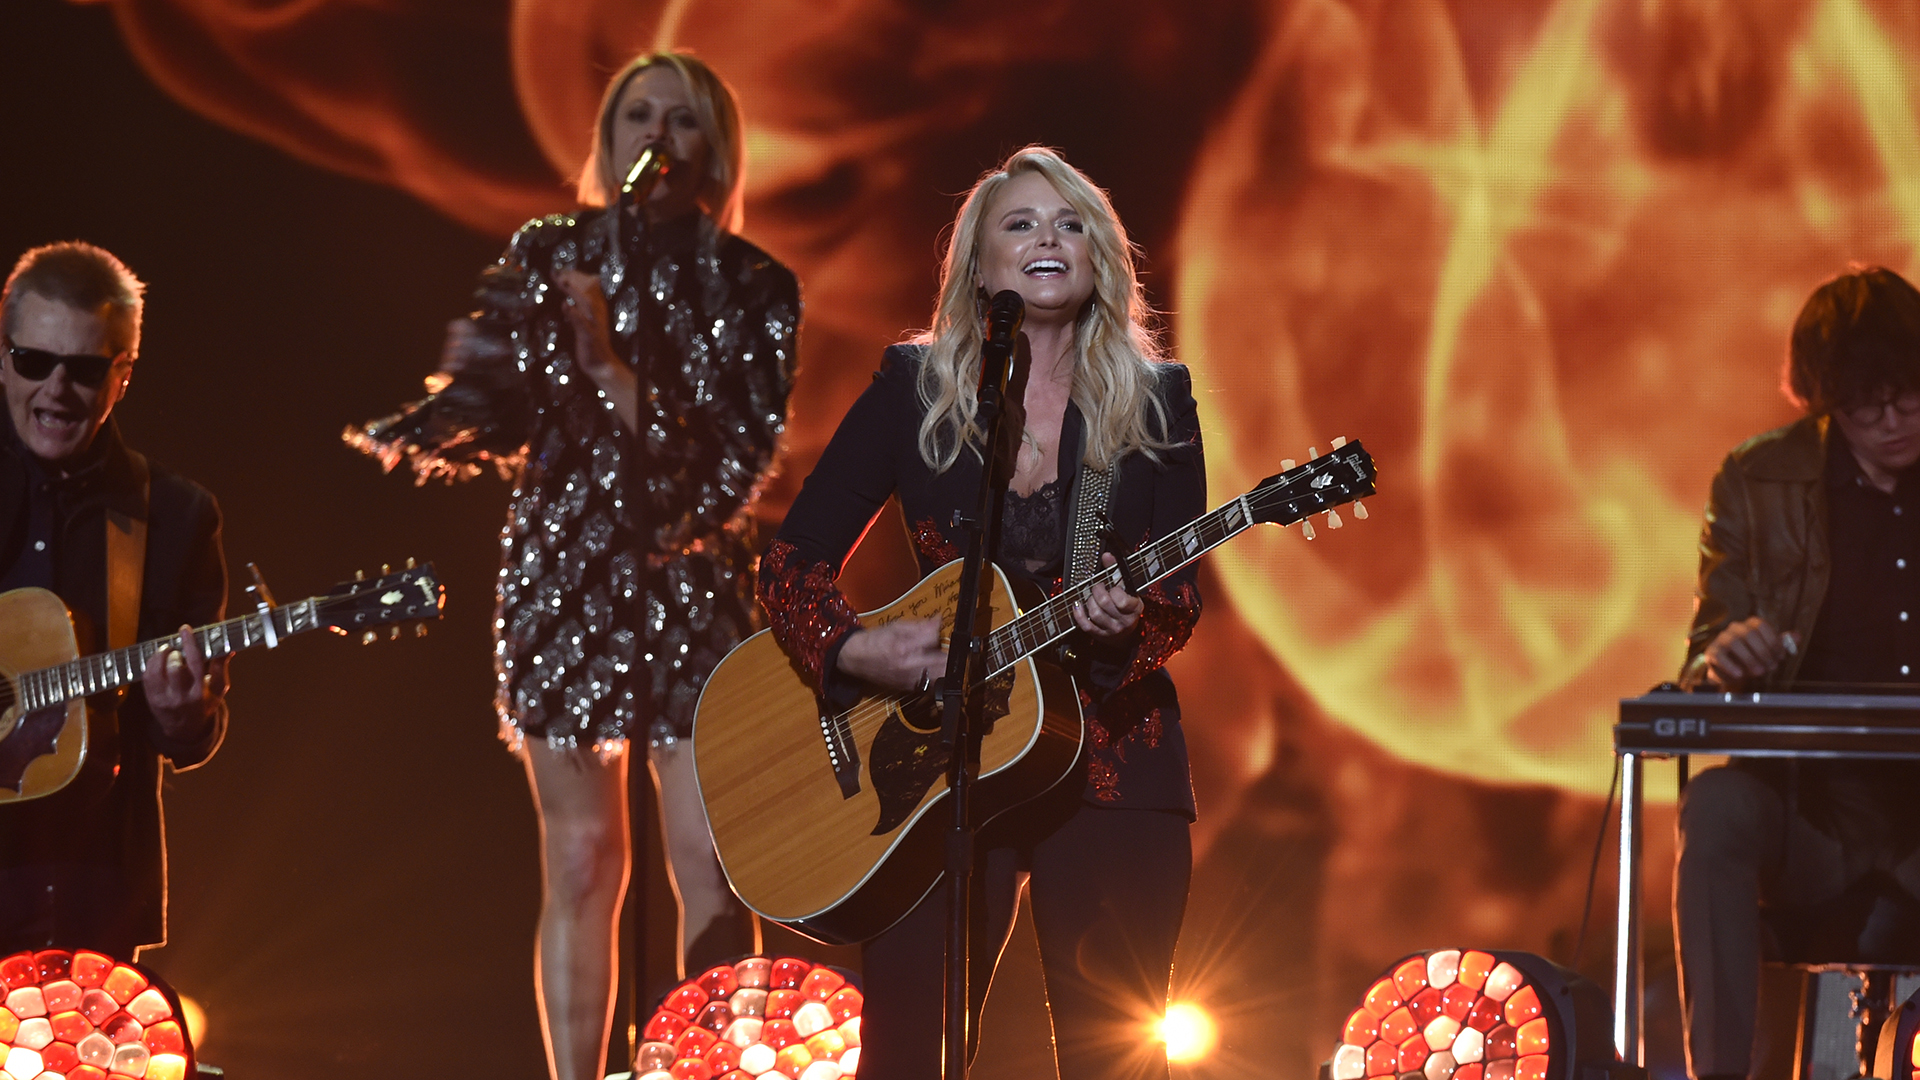 Decked out in a blazer and bustier, Song of the Year winner (and now ACM wins record holder!) Miranda Lambert strums the guitar for